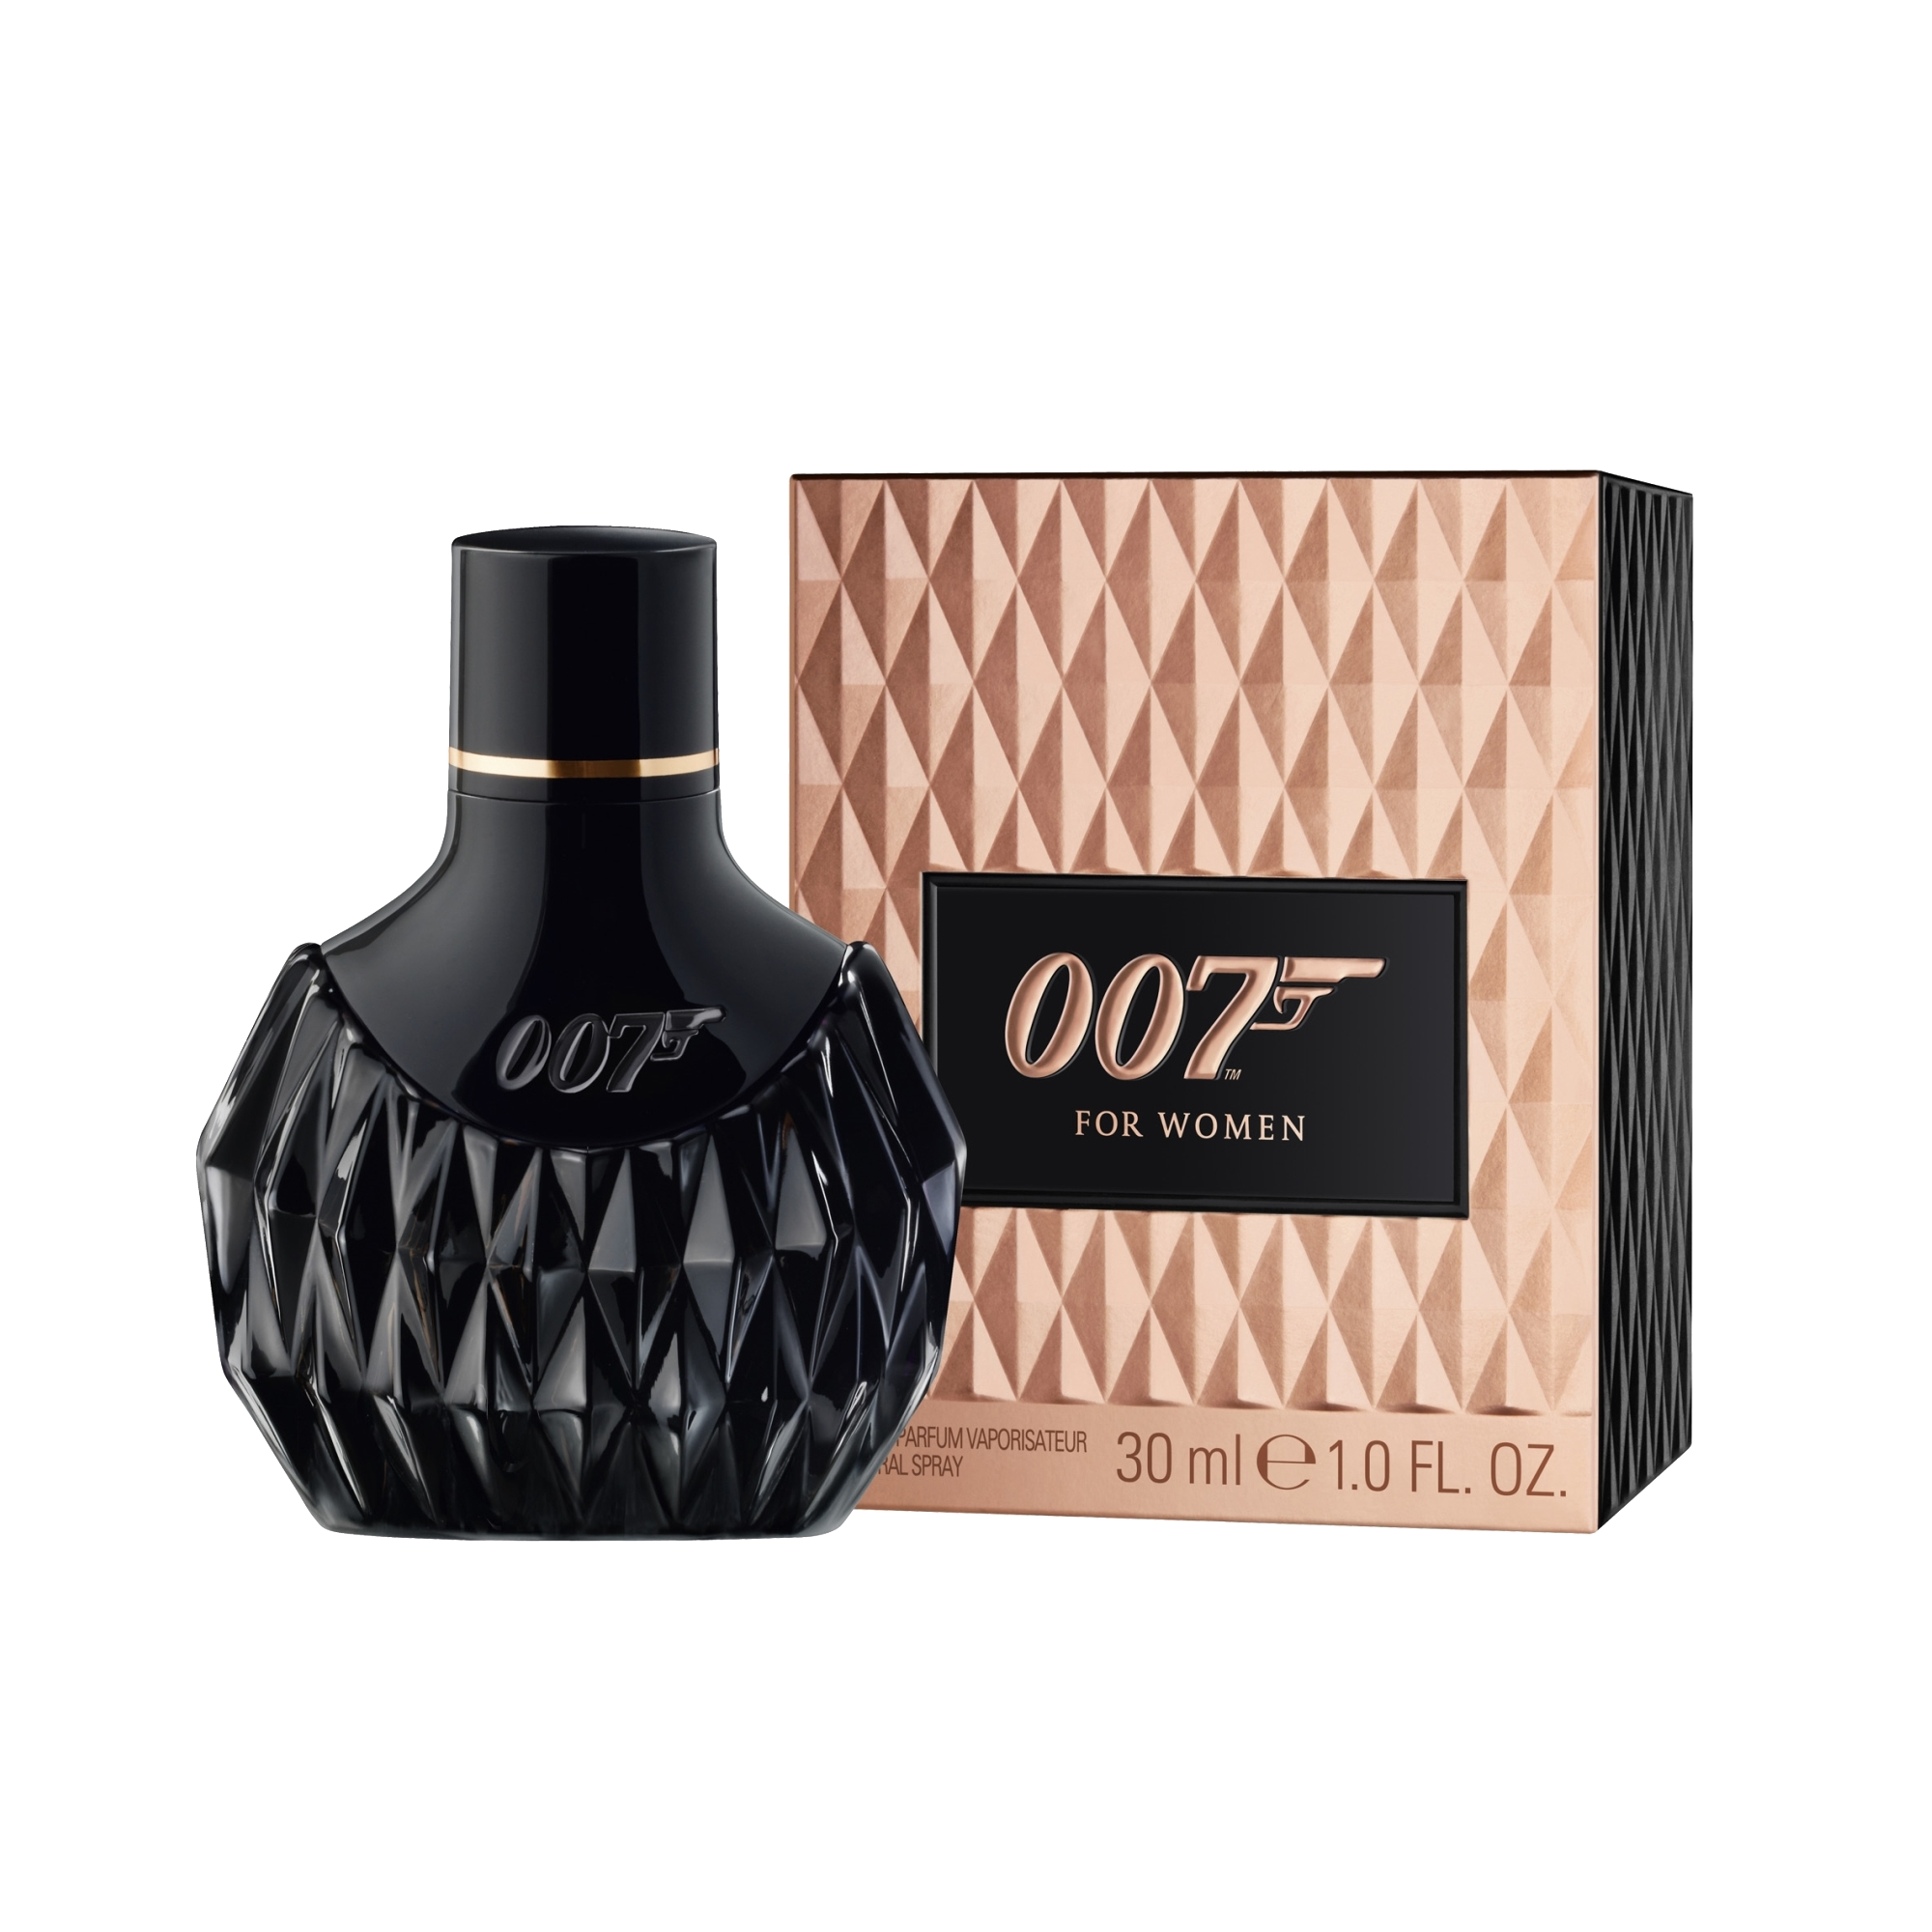 007 for woman EdP